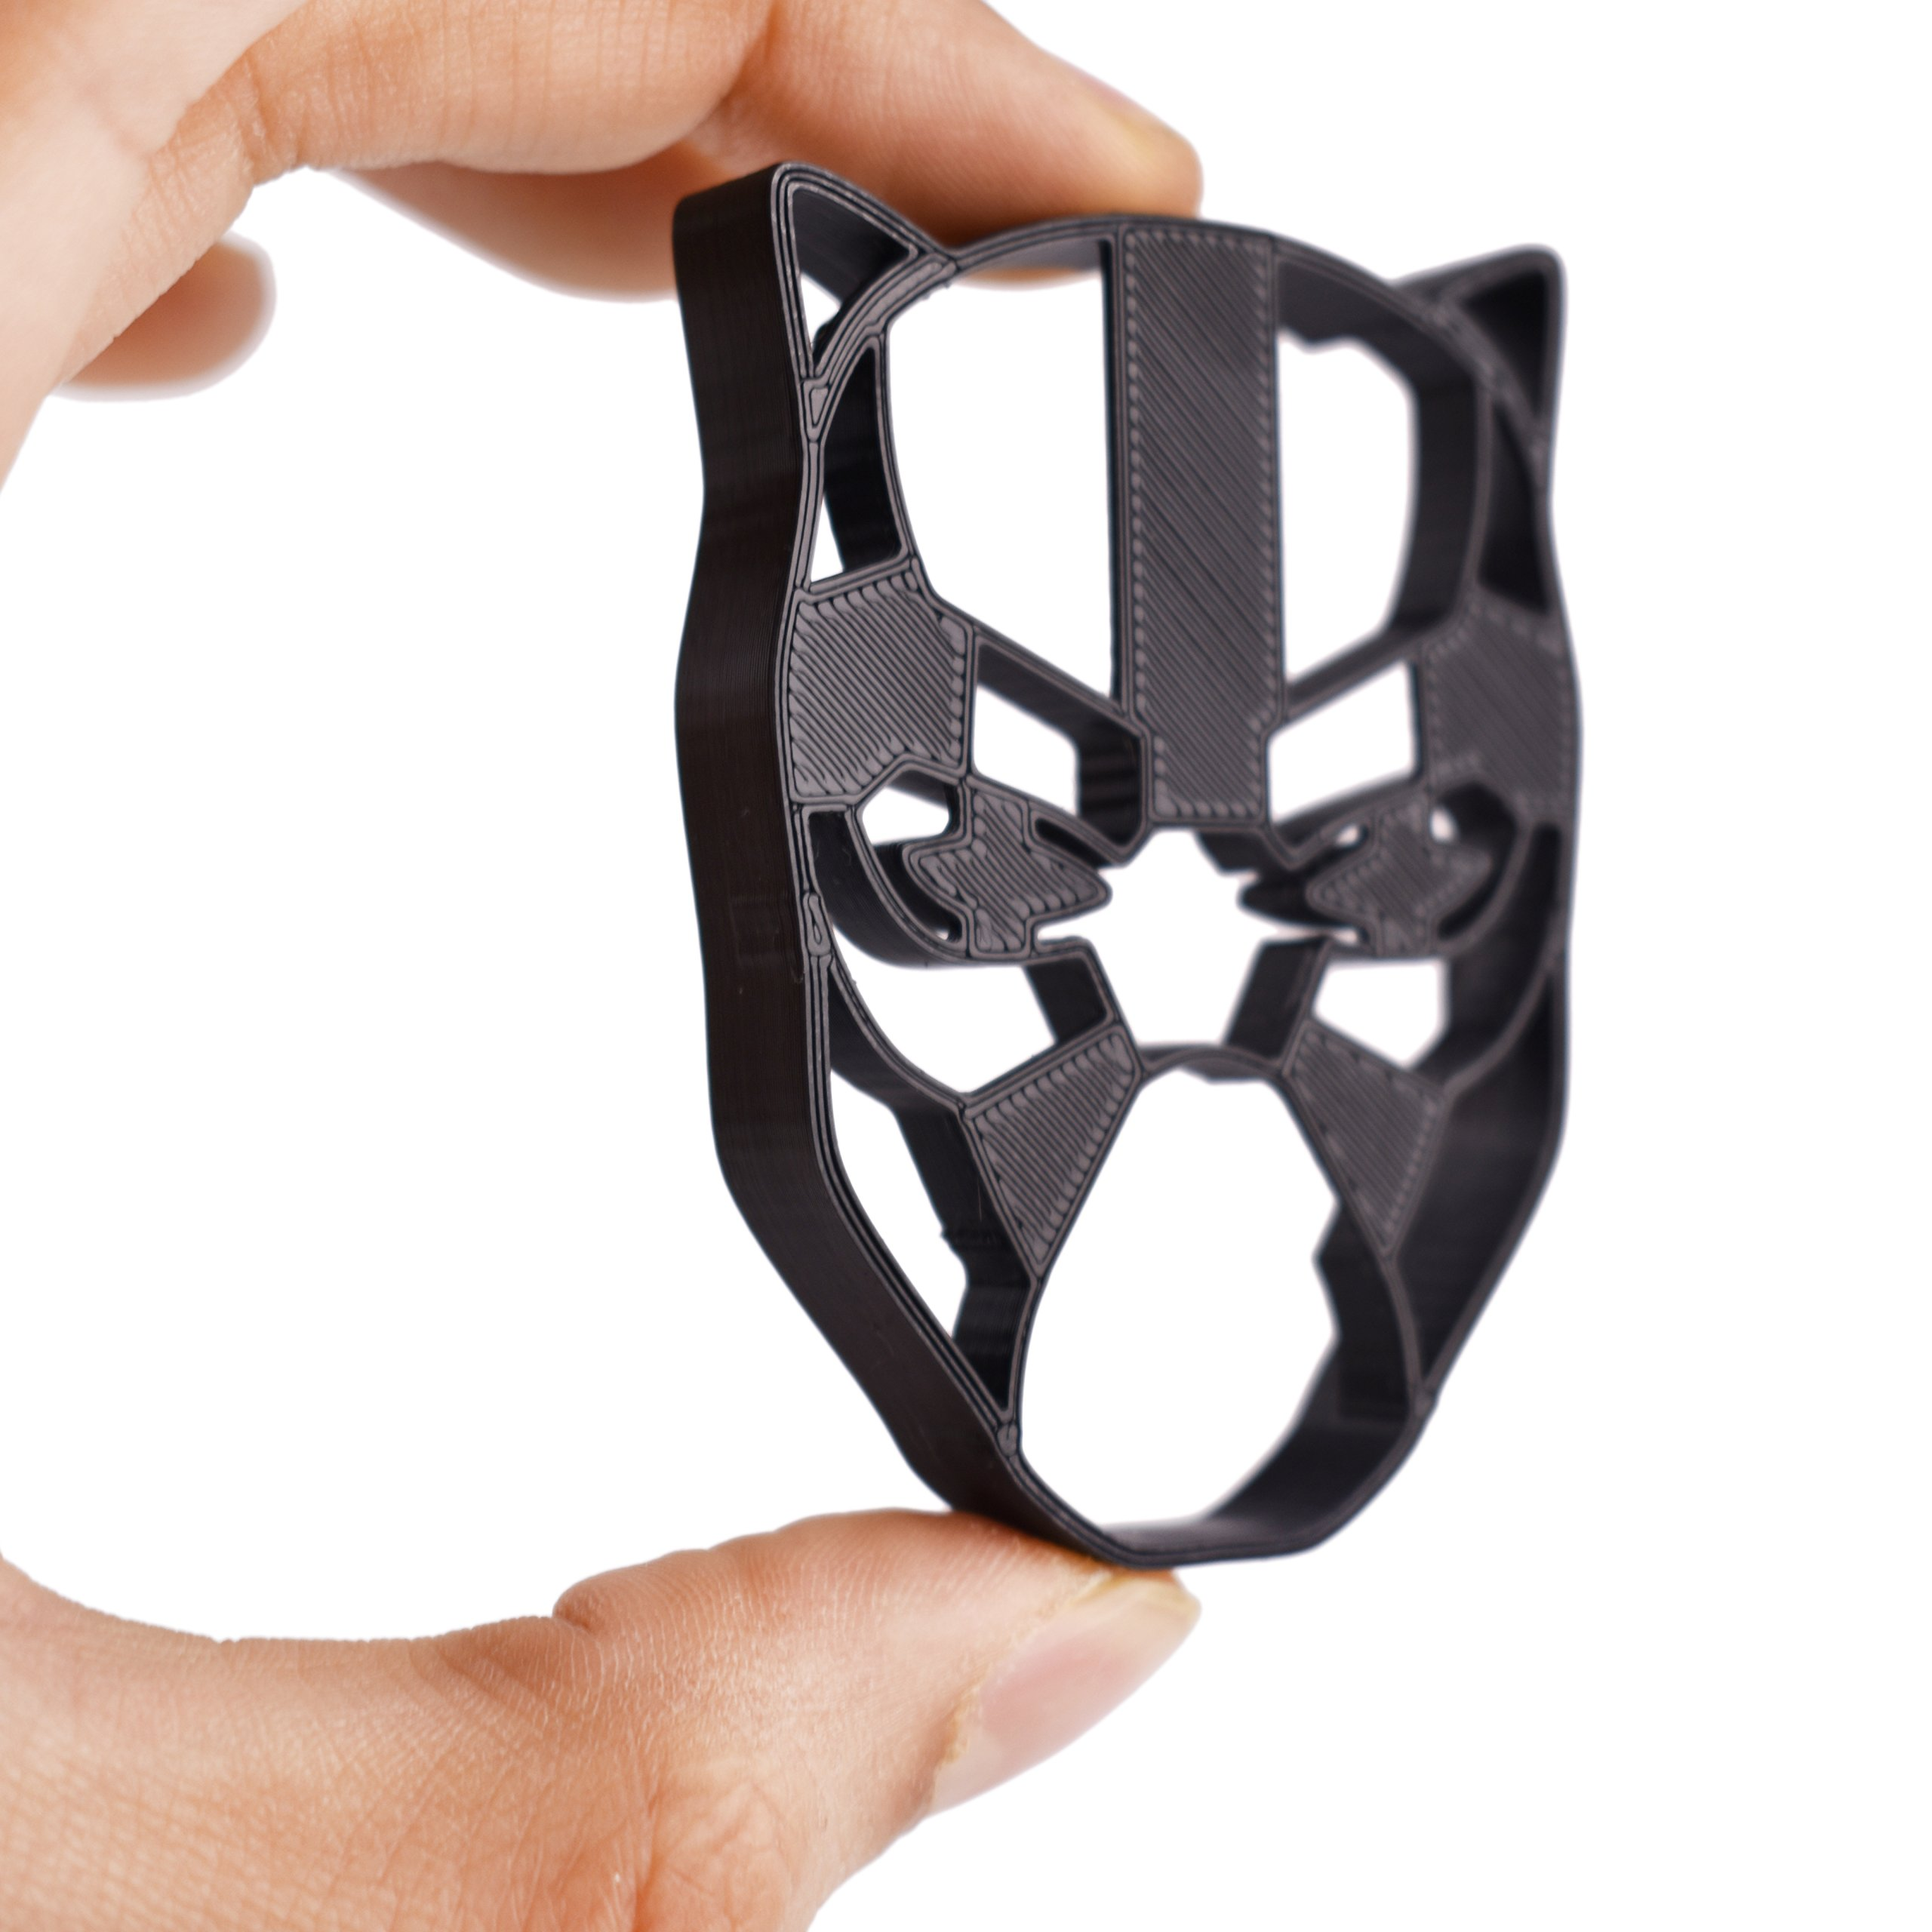 Black Panther Cookie Cutter & Fondant Cutter Classic Superhero Black Logo for Kids and Parents - Perfect for Cookies Cake Decorating Cupcake Toppers (1 Medium 2'' x 3'') by Bakelights (Image #2)